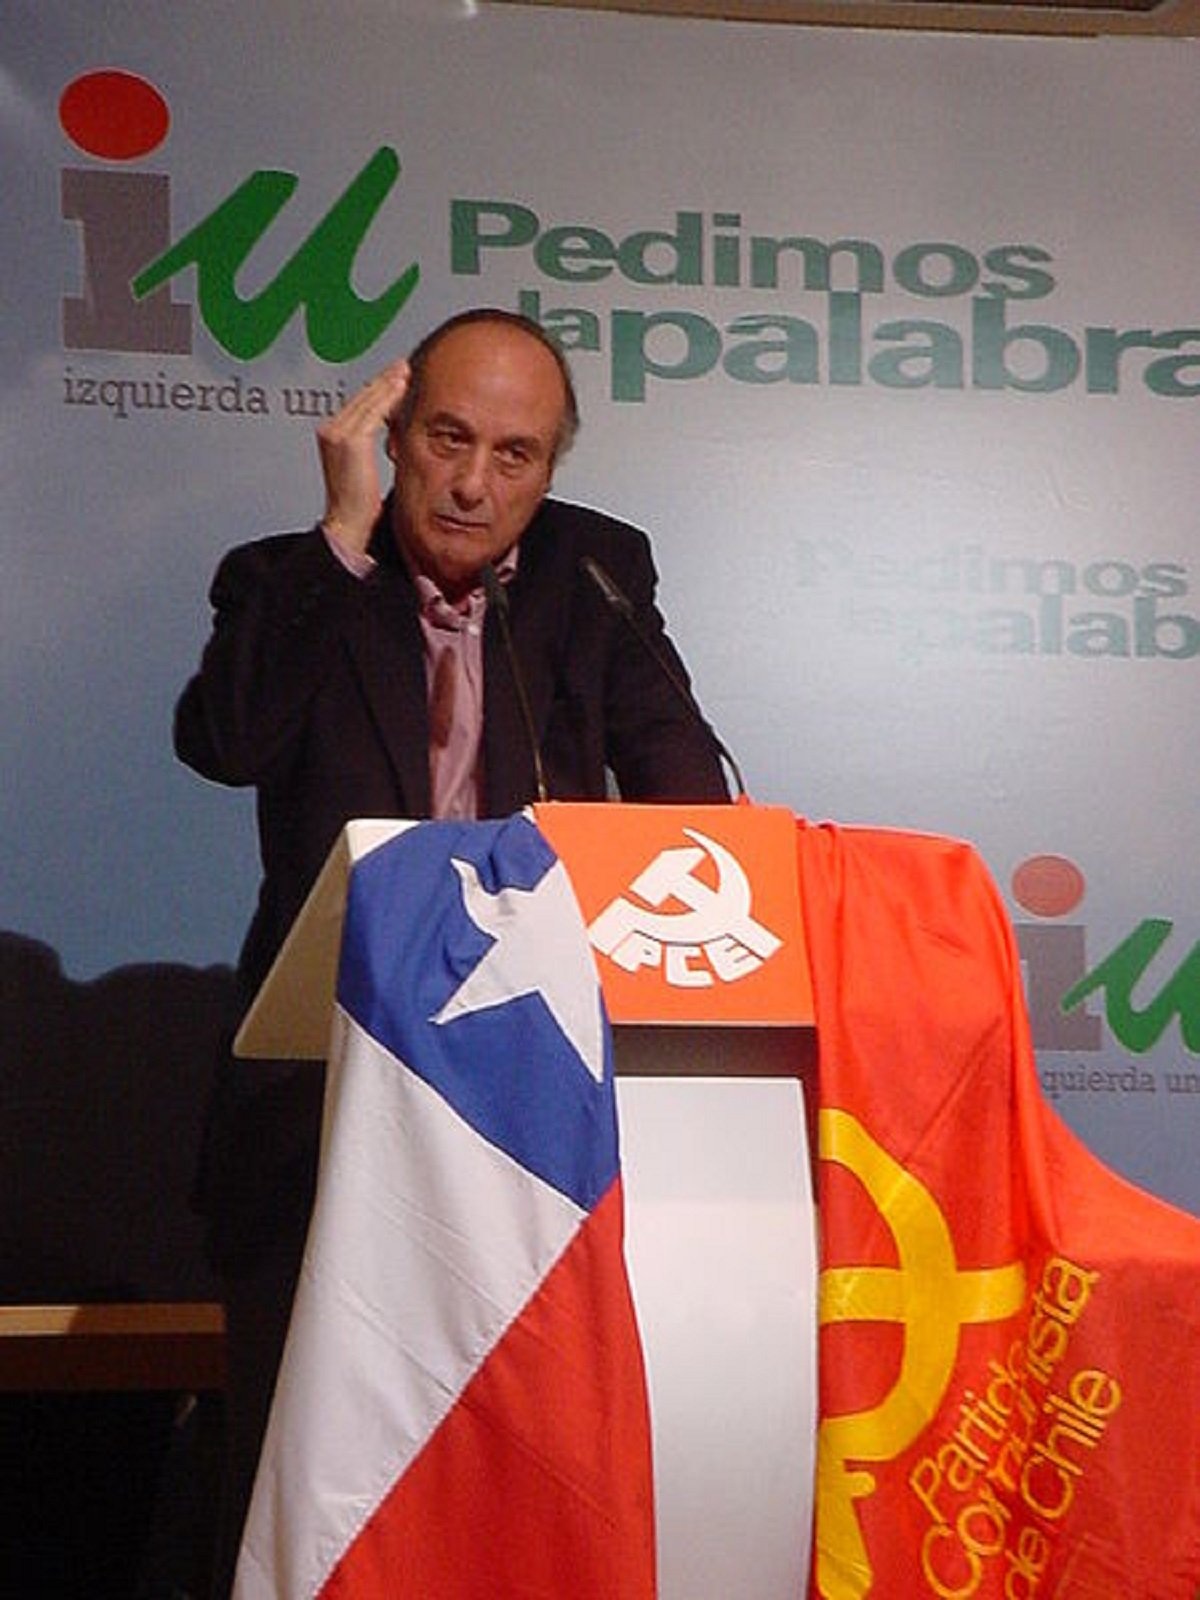 Paco Frutos / Wikipedia